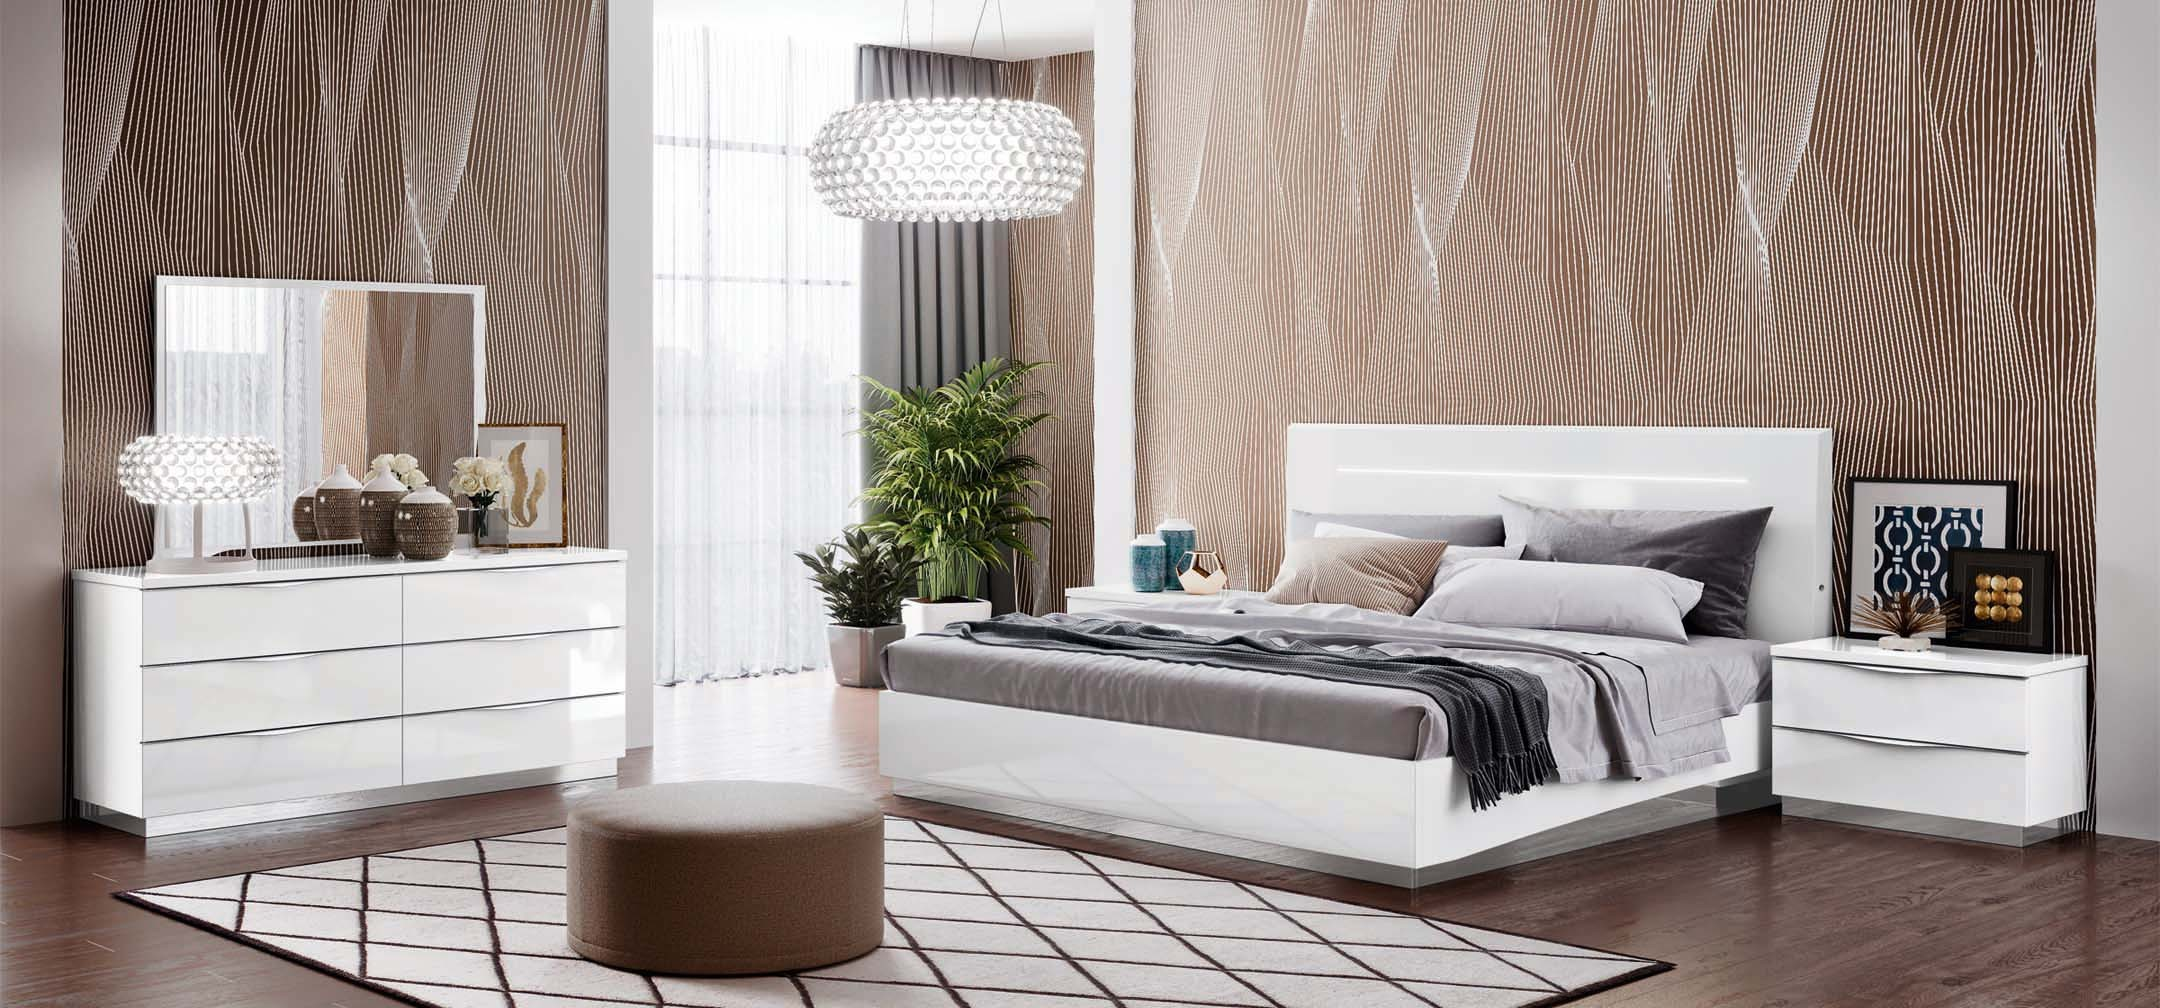 onda legno white bedroom set by camel group nova interiors 12460 | onda legno white